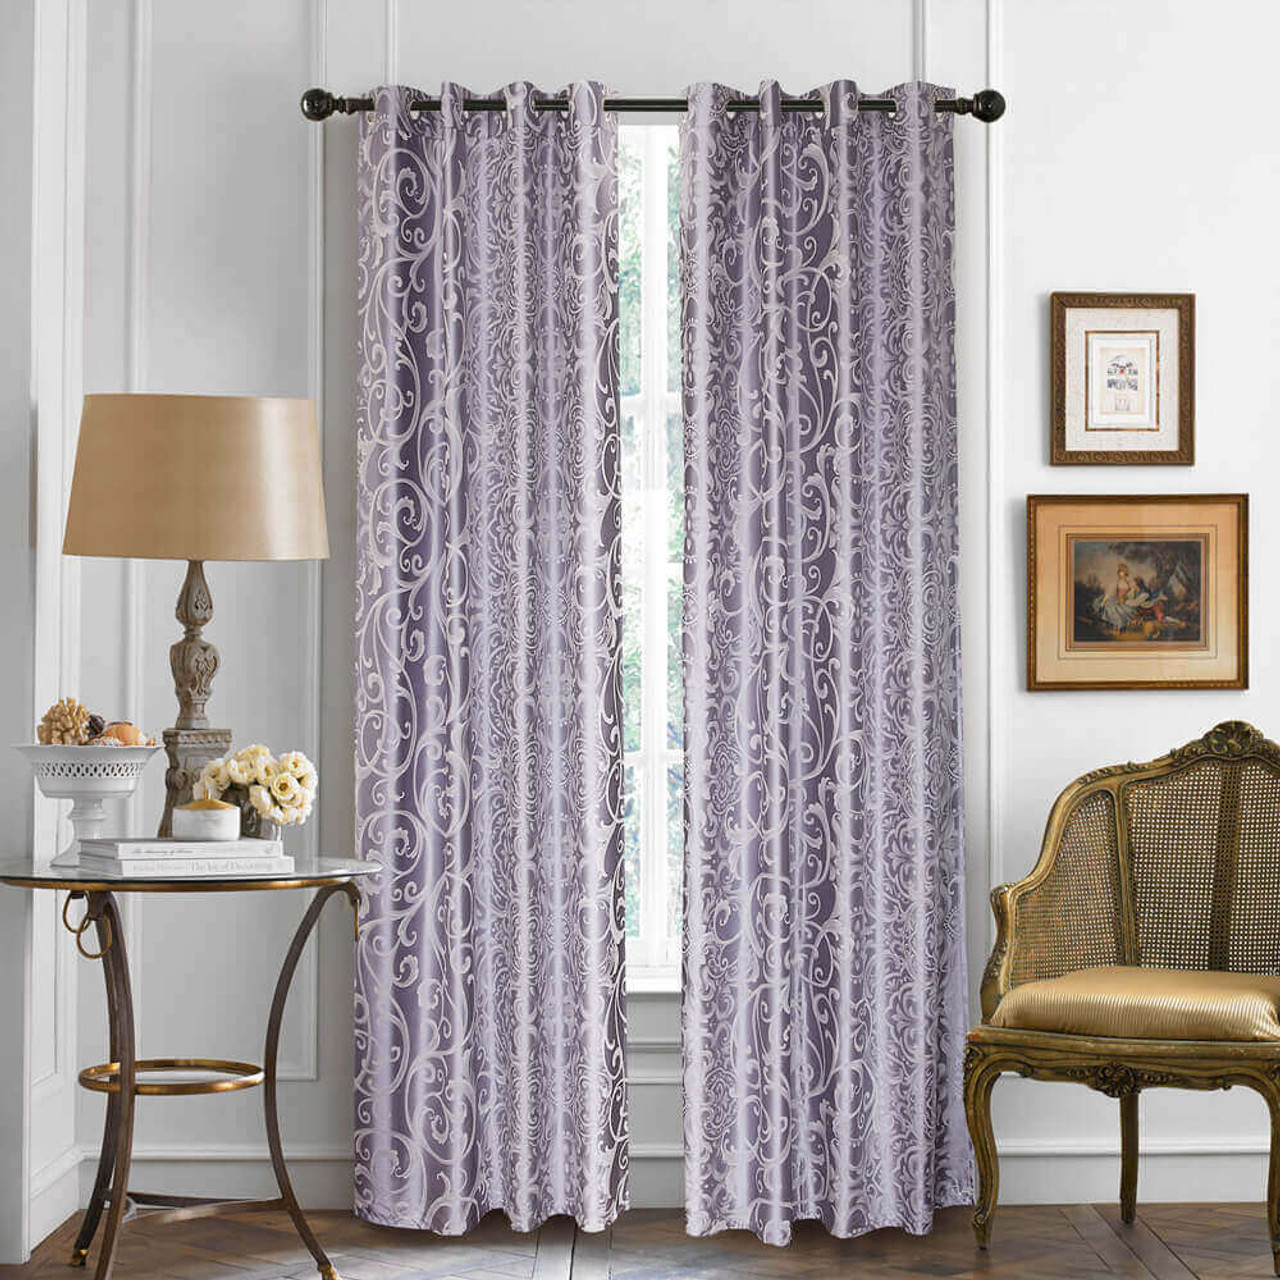 Curtain Panel Semi-Blackout Drapes, DMC718 Dolce Mela Las Vegas Window Treatments